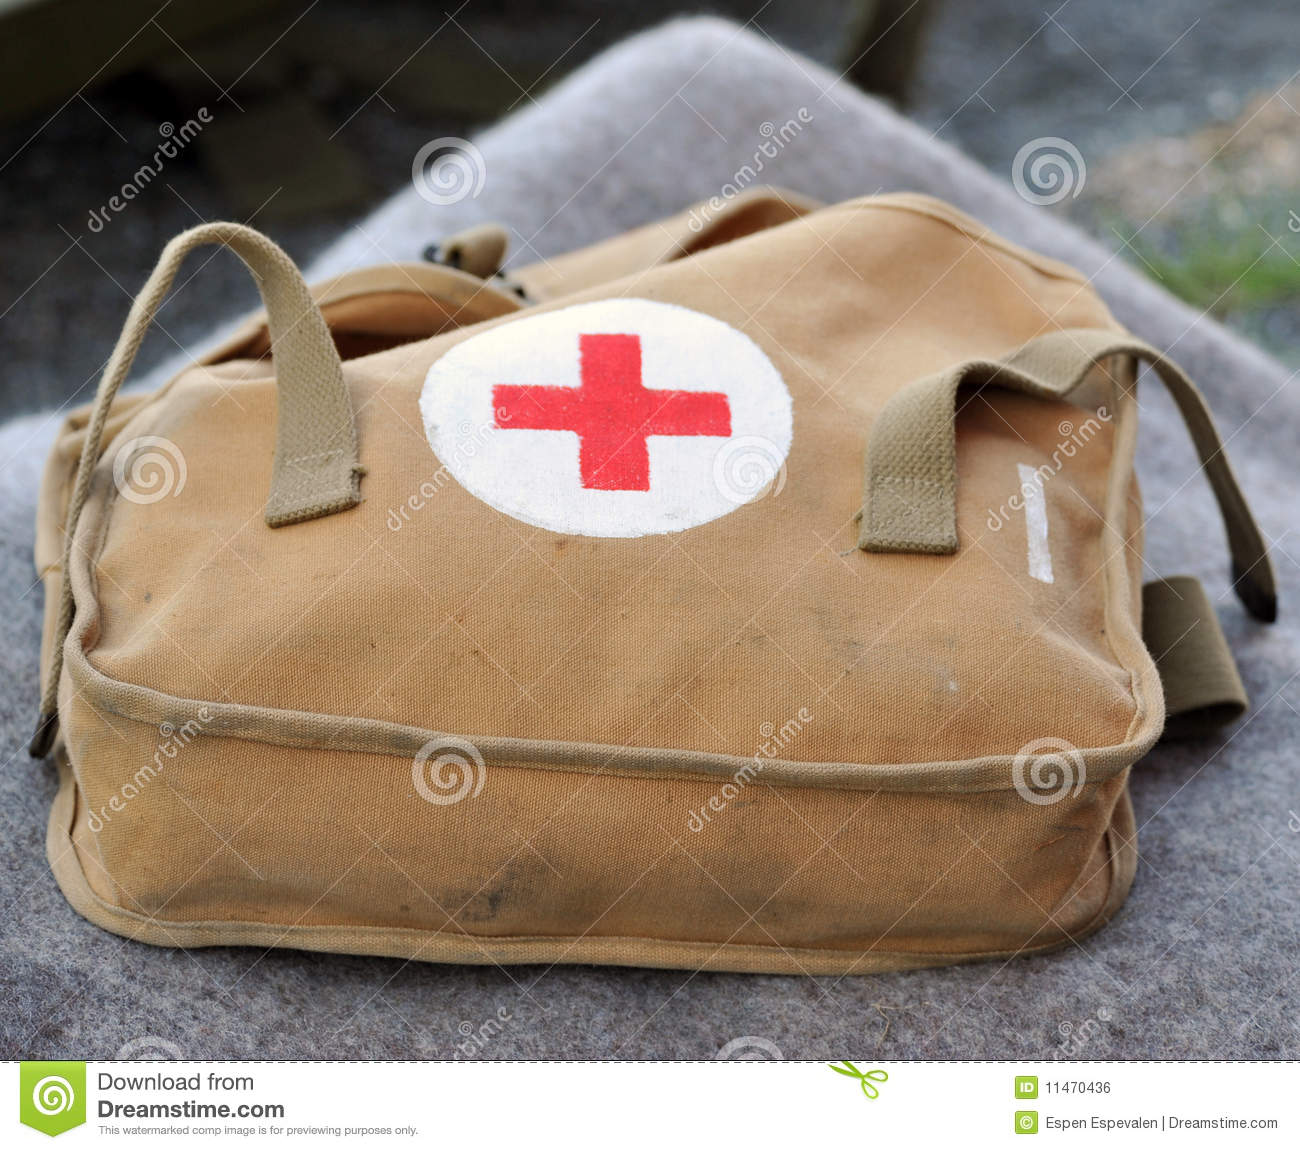 Military first aid kit stock photo  Image of blanket - 11470436